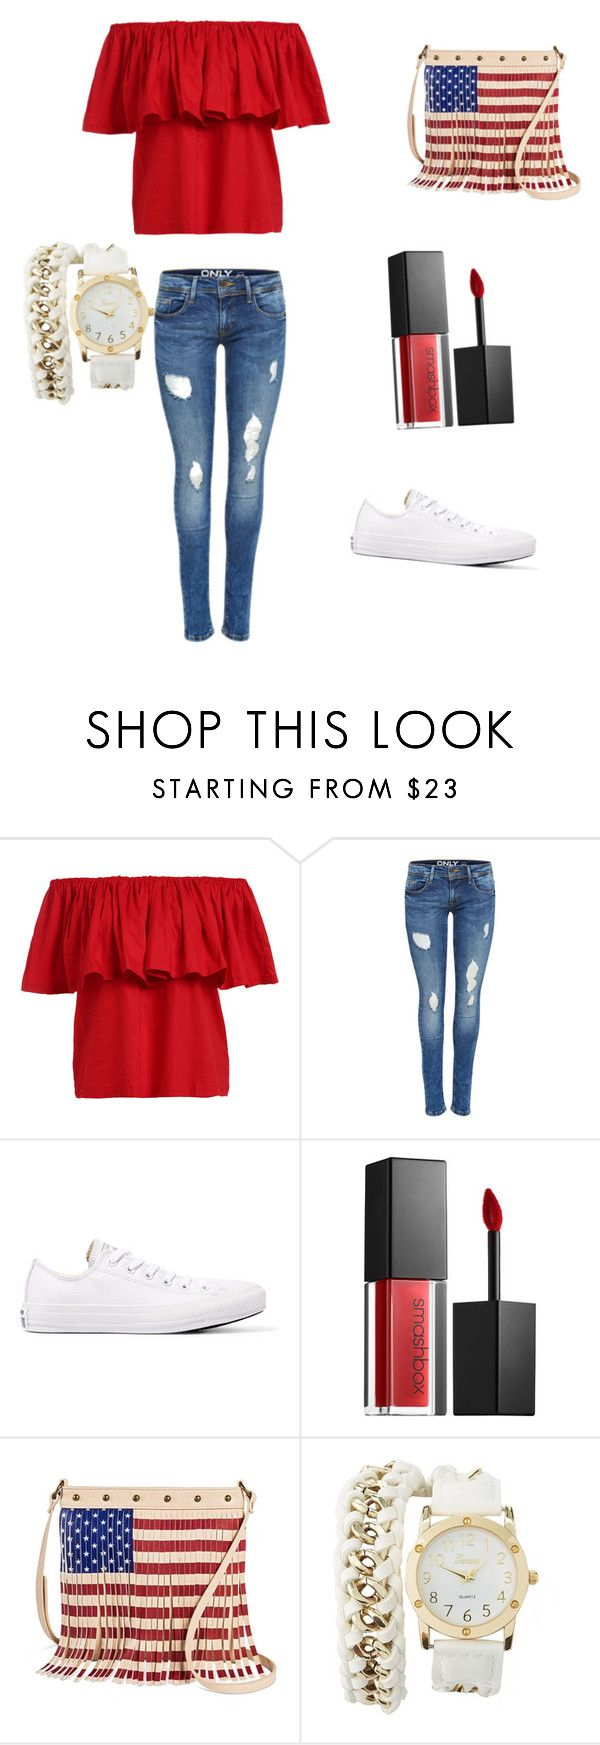 """4th of July outfit"" by khoneygirl ❤ liked on Polyvore featuring Converse, Smashbox, TWIG & ARROW, Charlotte Russe, redwhiteandblue and july4th"